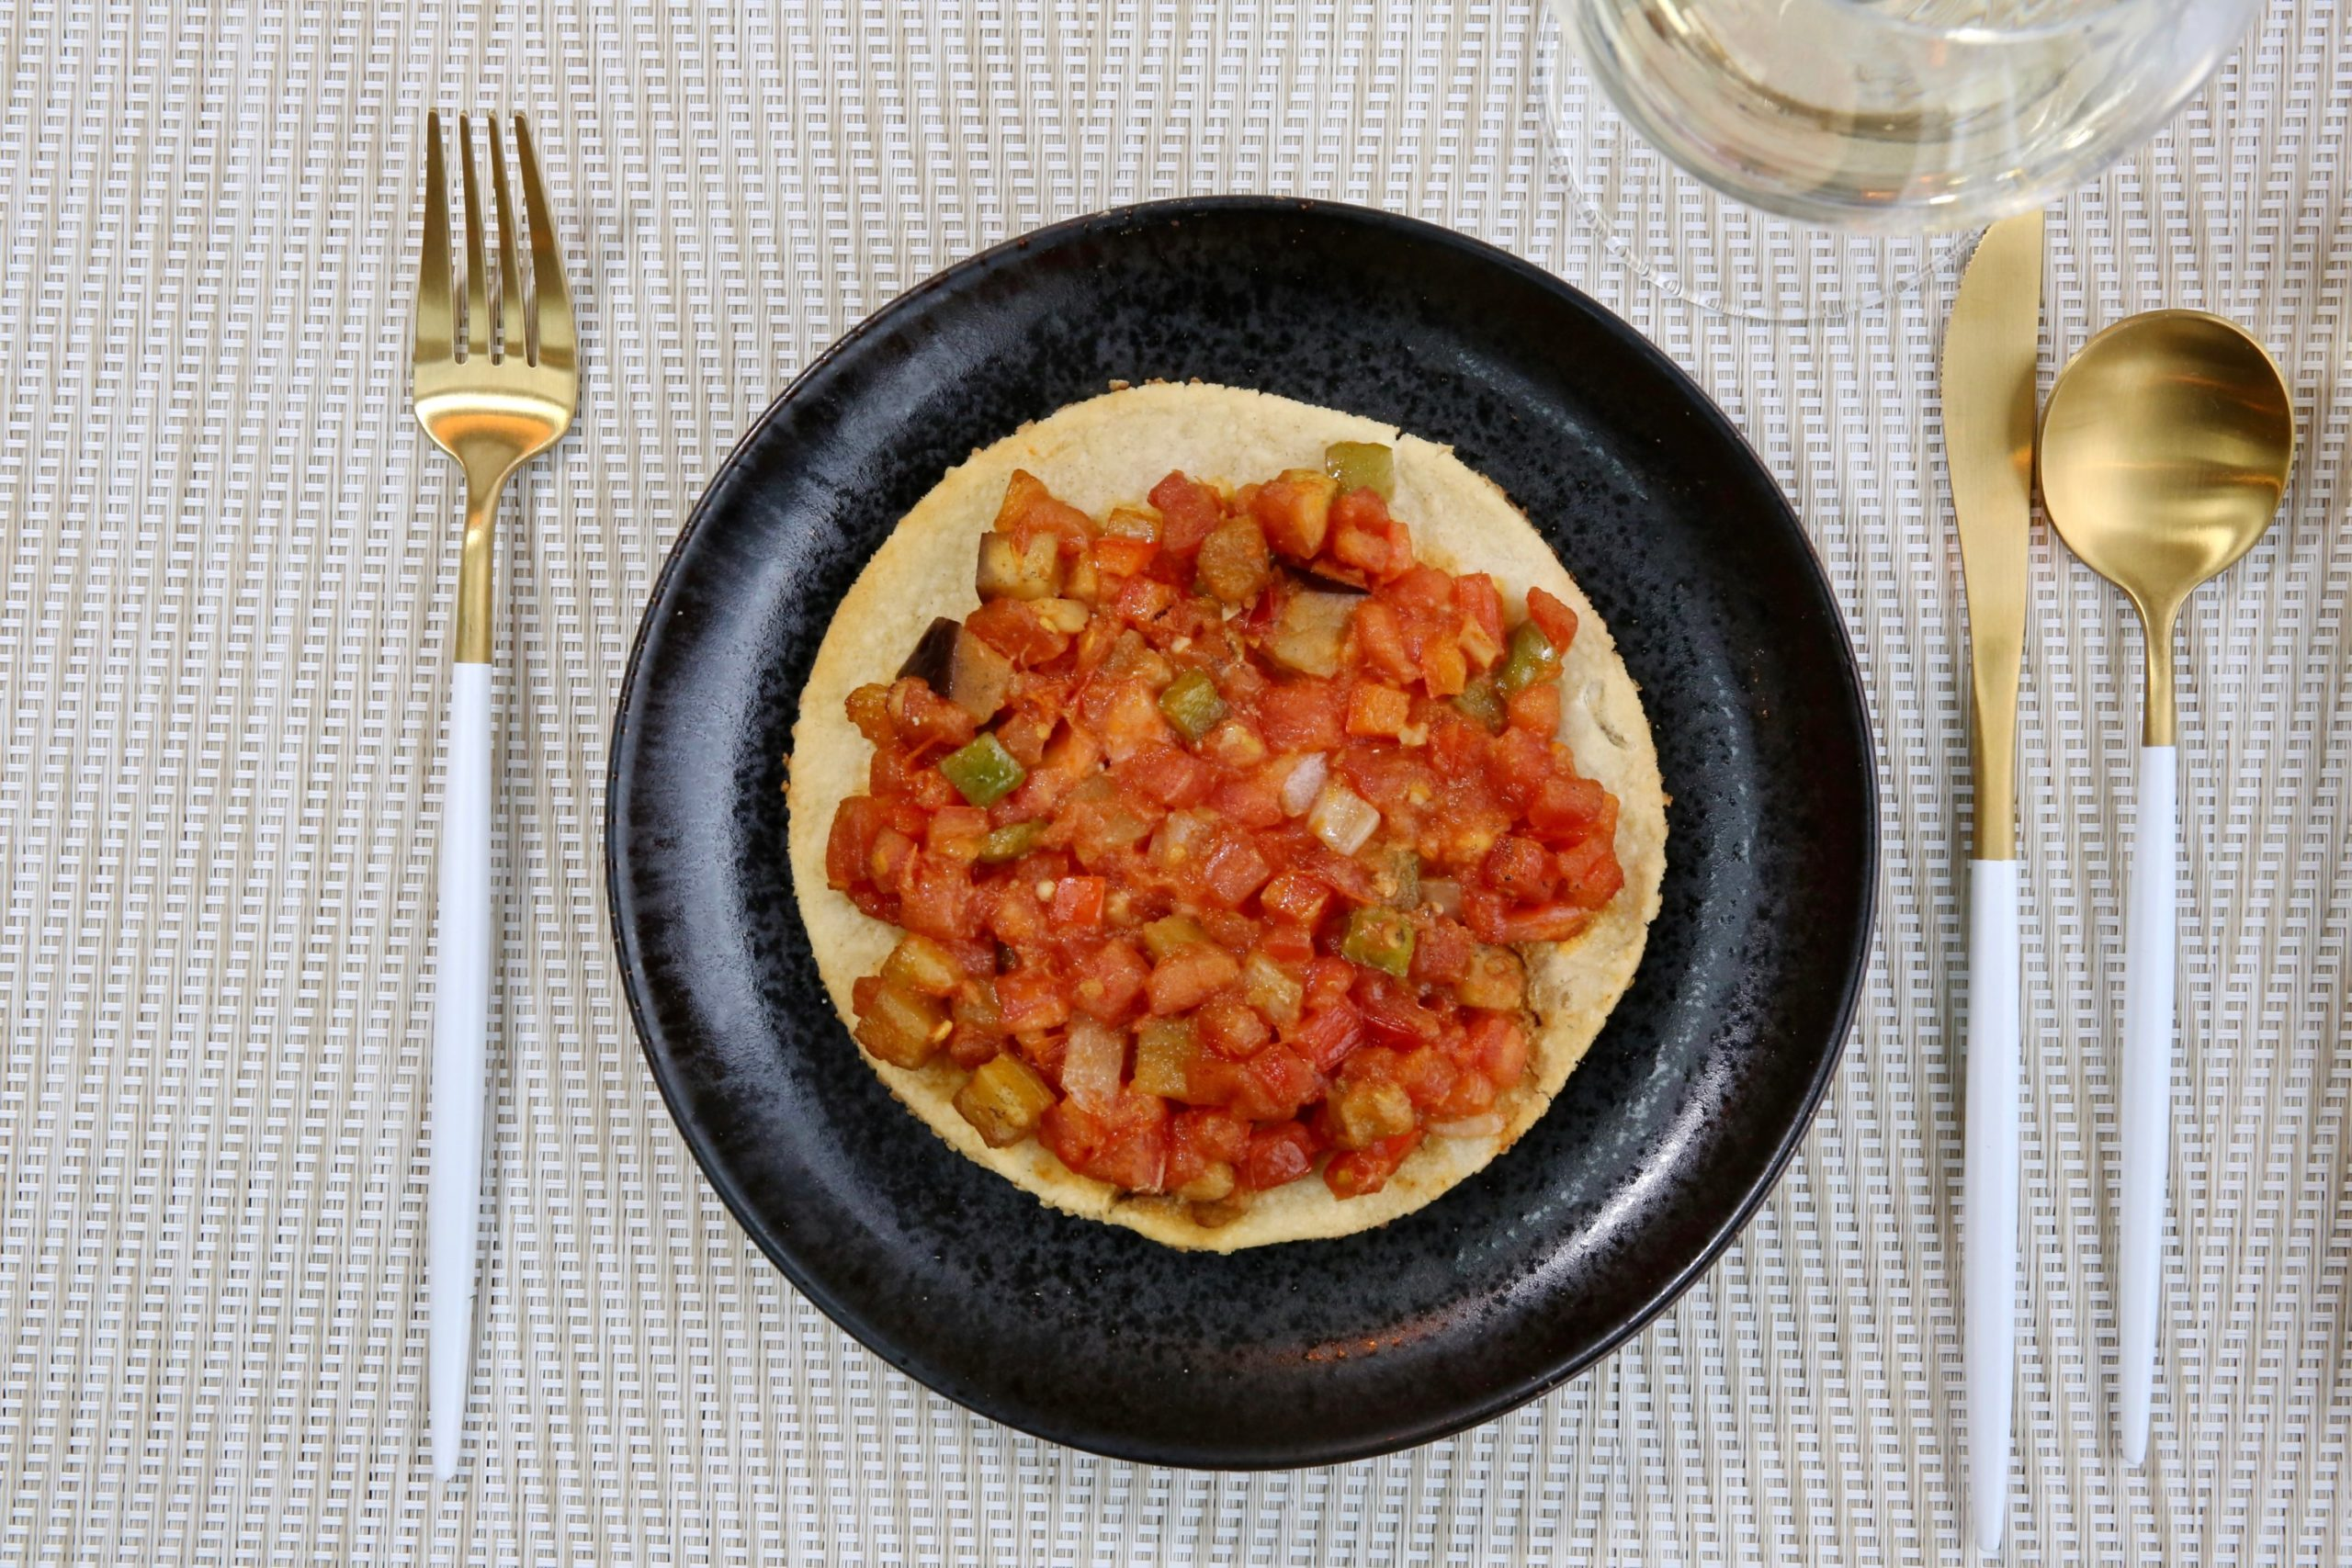 A tomato-topped flatbread is crisped in the green egg over orange wood. Photo by Evy Mages.